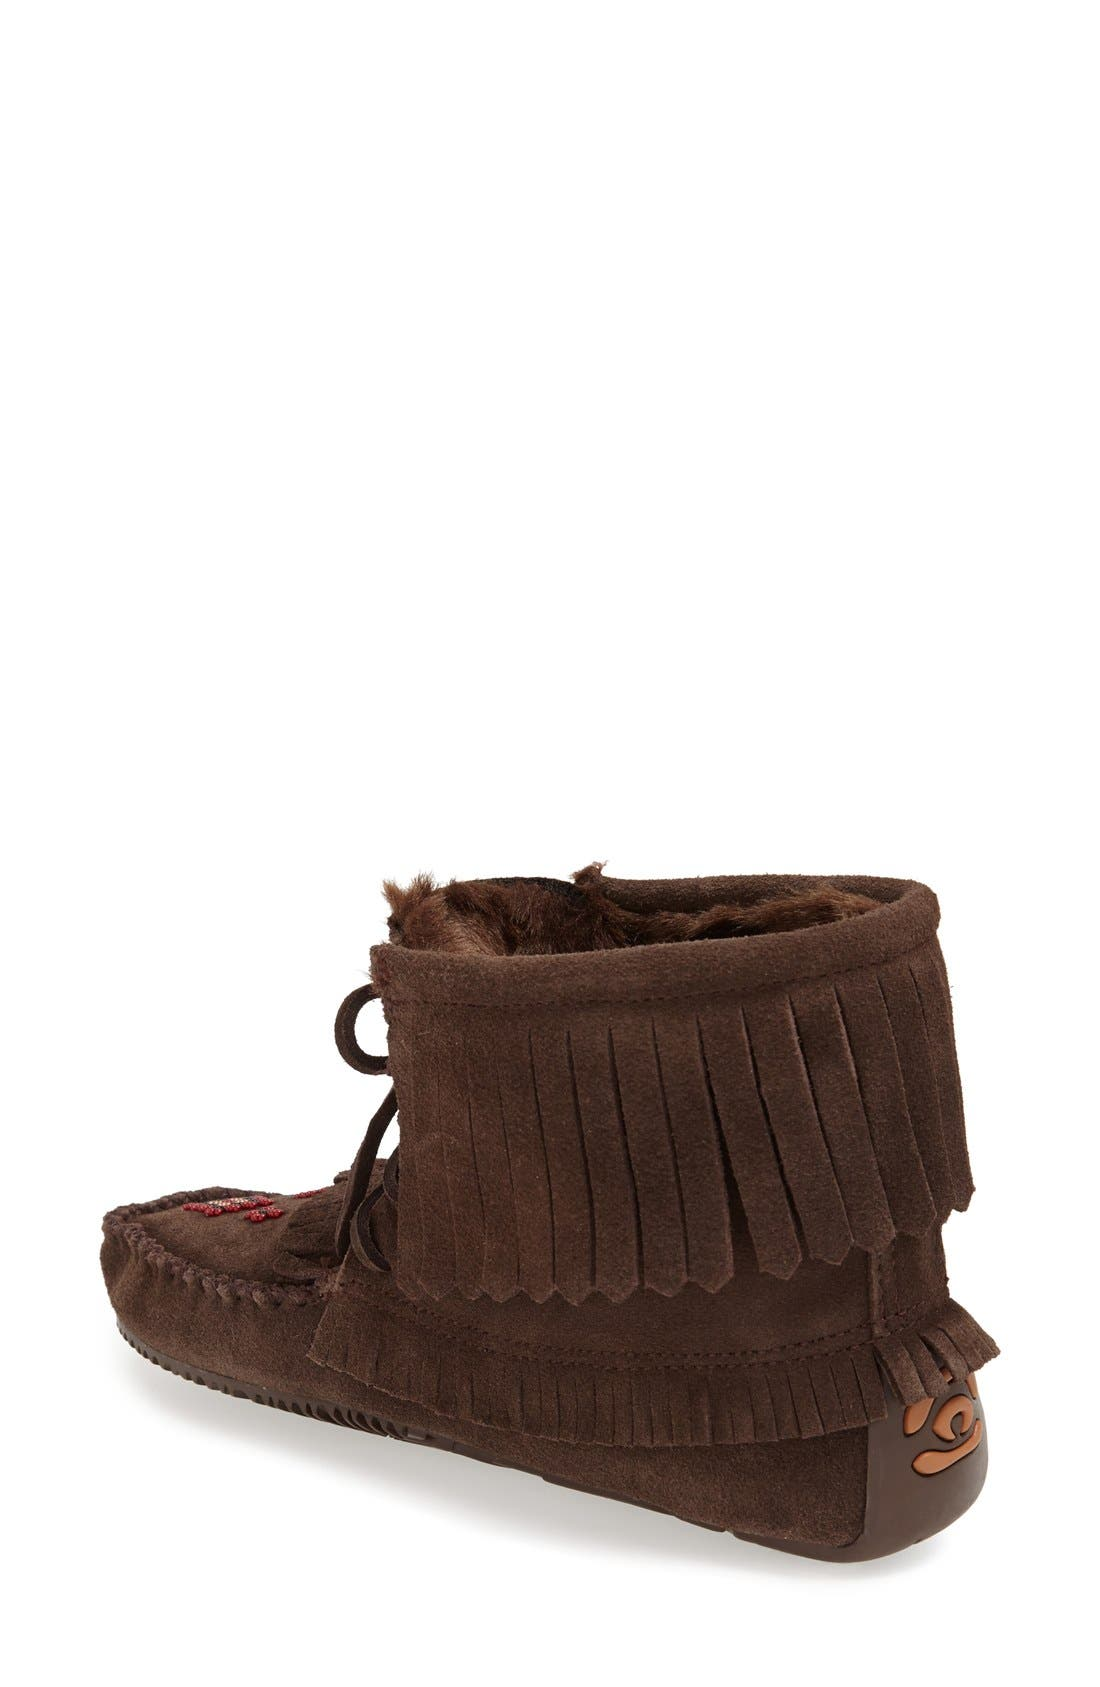 'Harvester' Moccasin,                             Alternate thumbnail 2, color,                             Chocolate